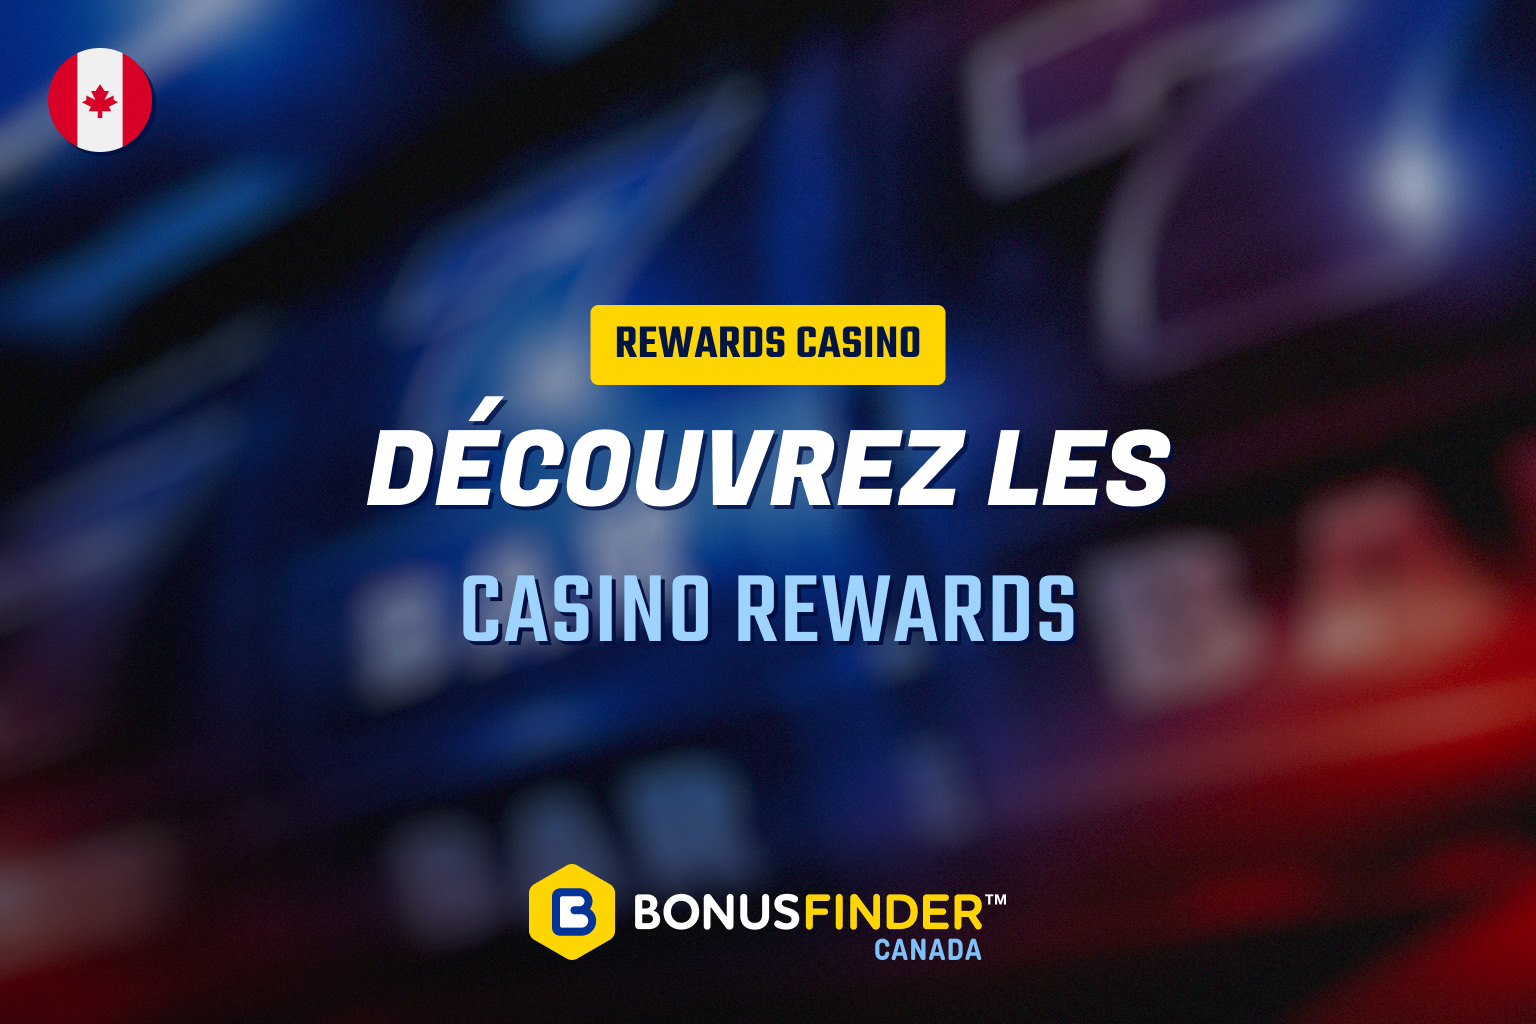 rewards casinos